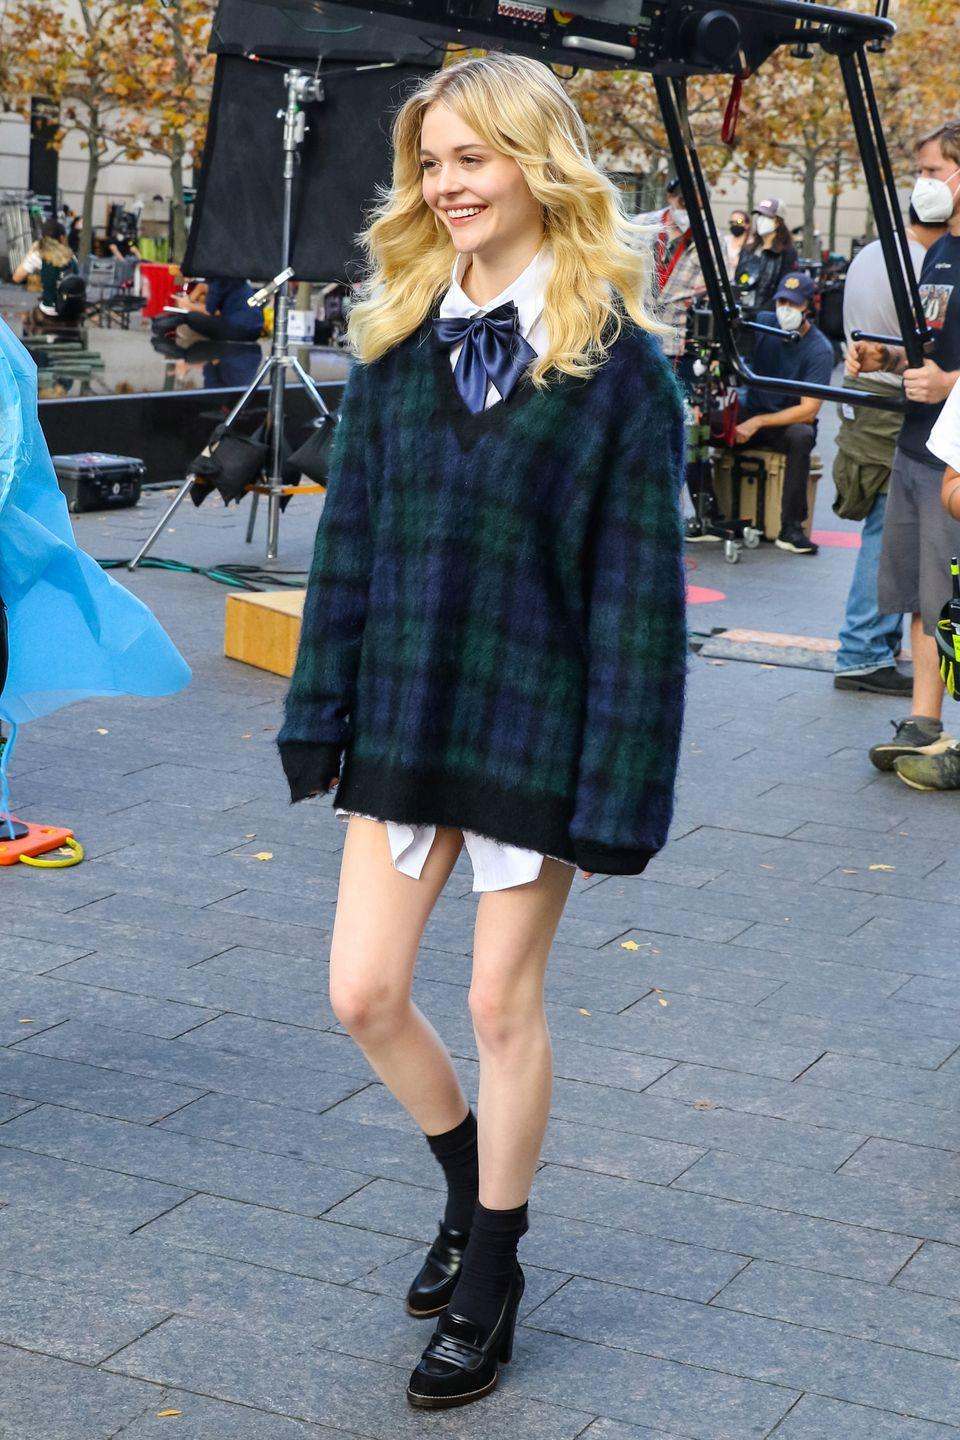 <p>Emily Alyn Lind rocks a preppy no-pants look featuring an oversized sweater, pussy bow blouse, black socks, and heeled loafers. </p>